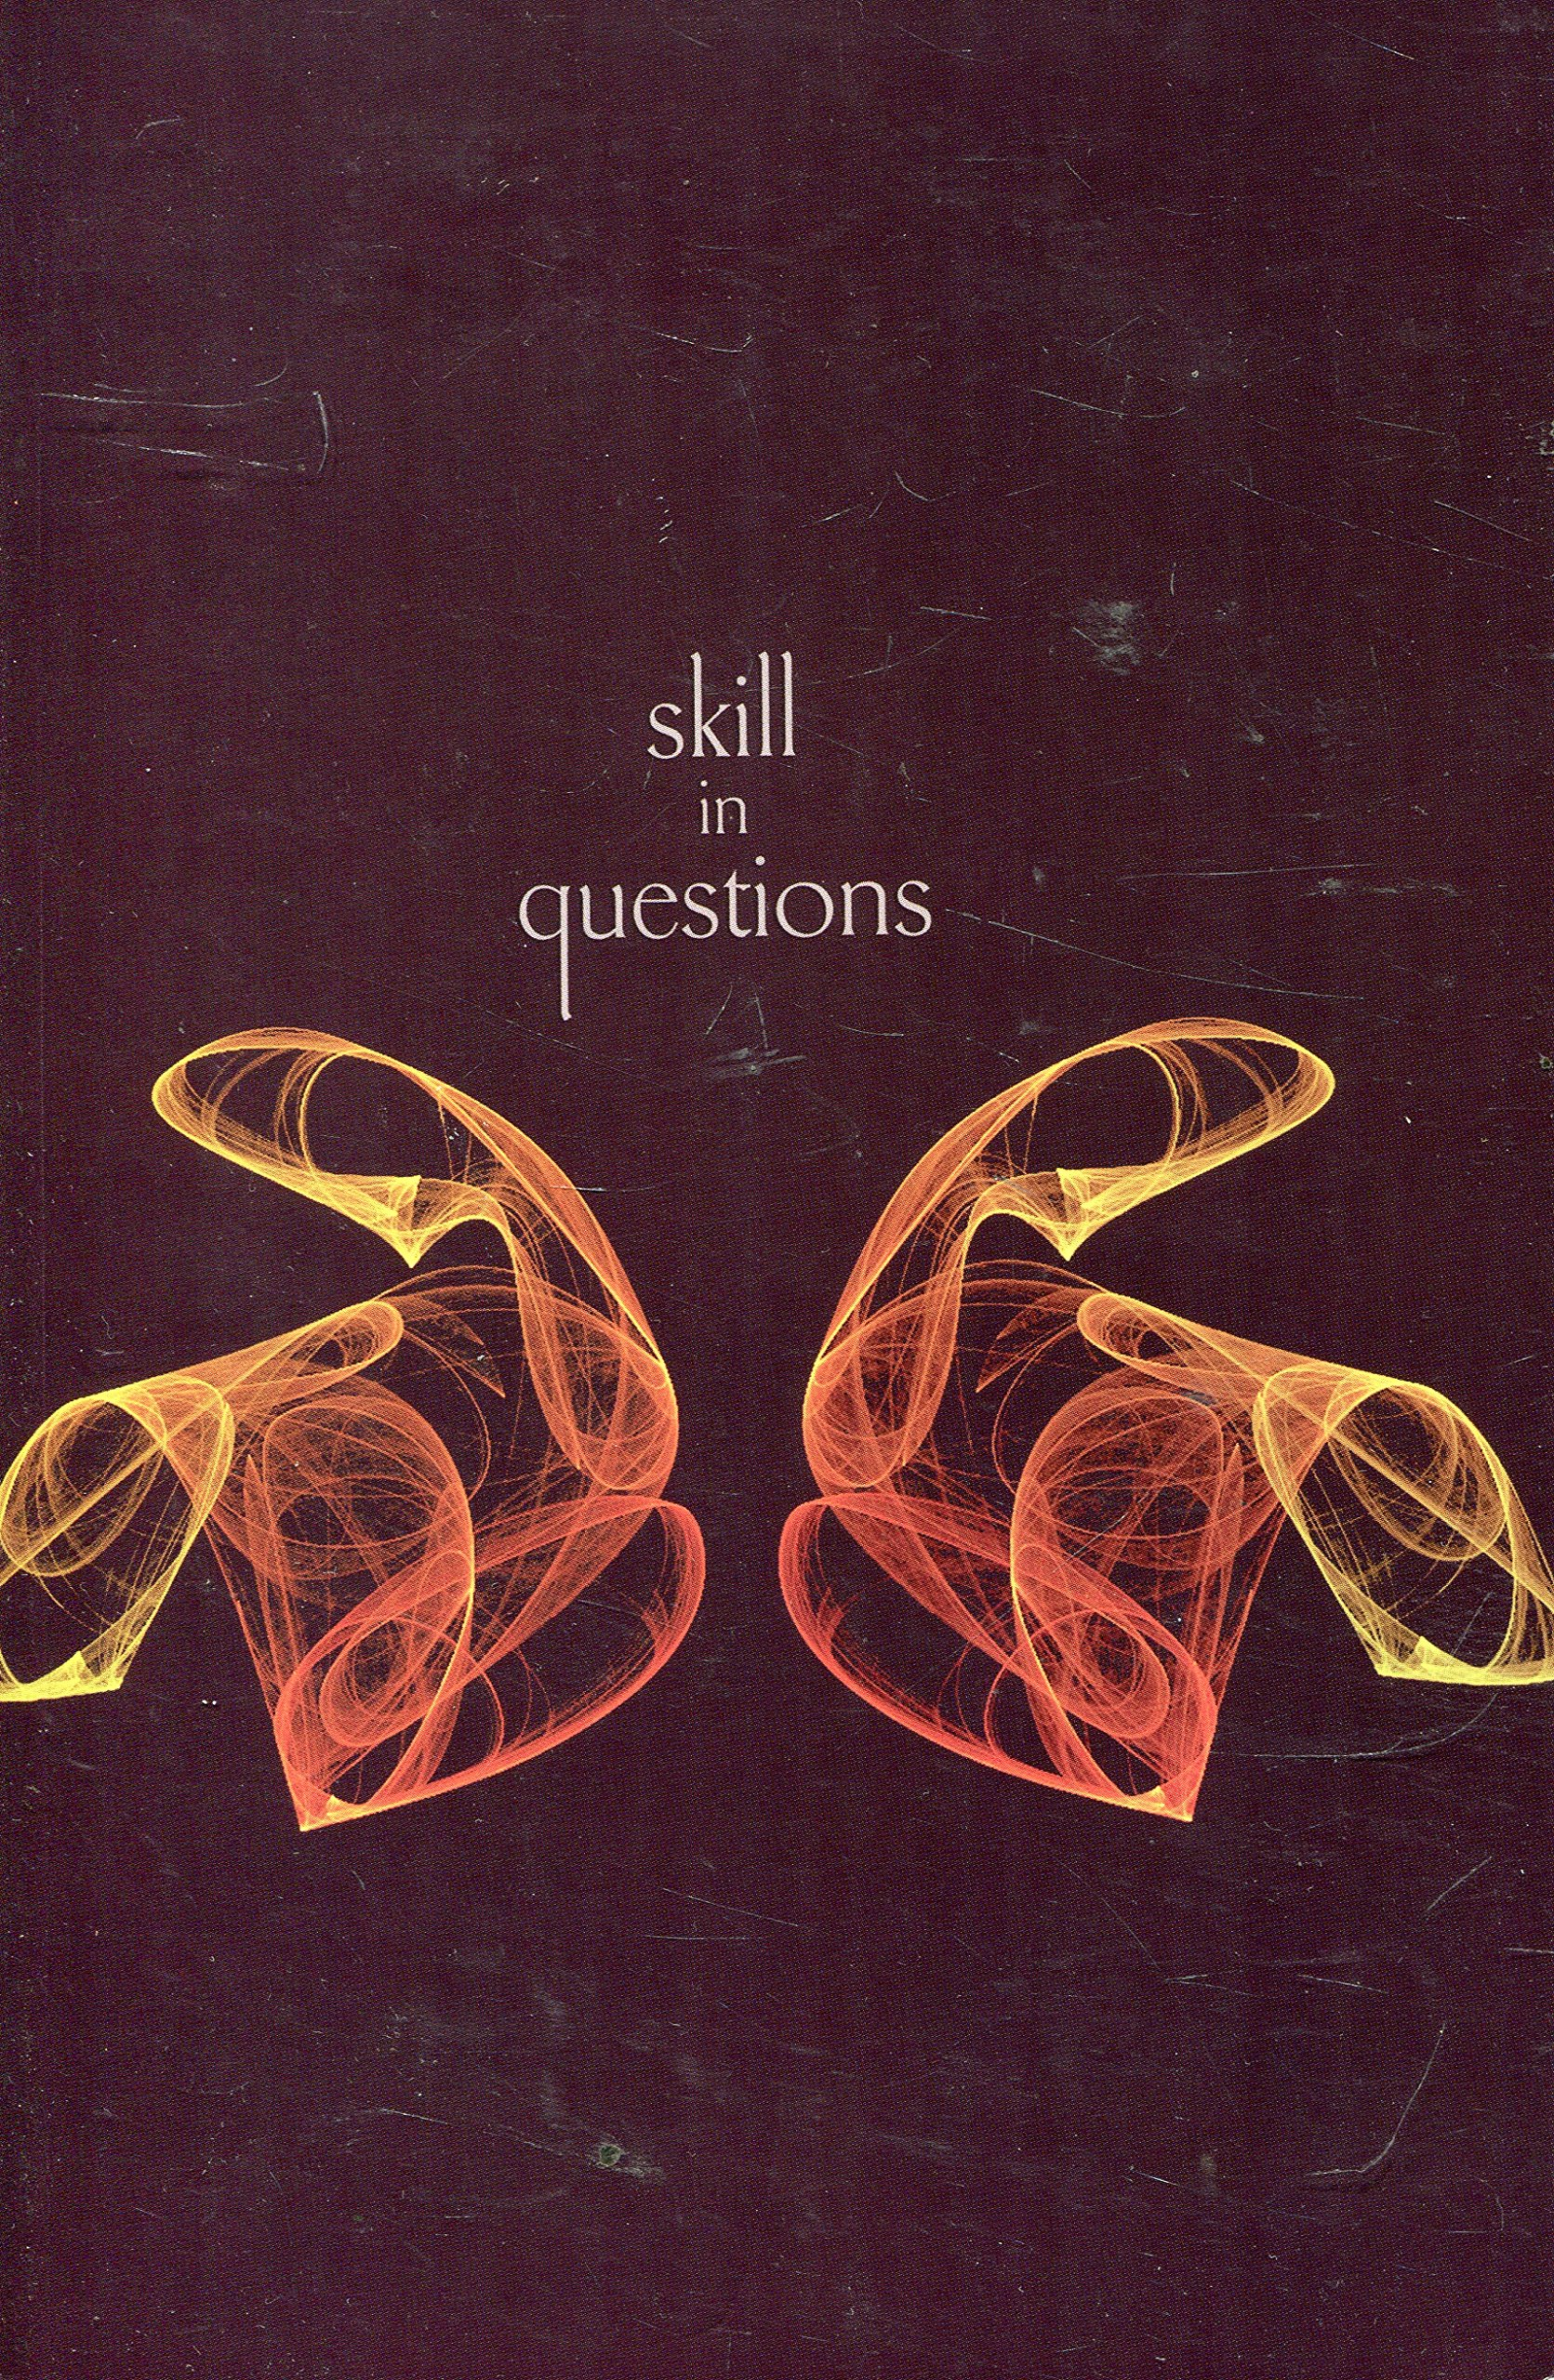 Than Skill in Questions cover art